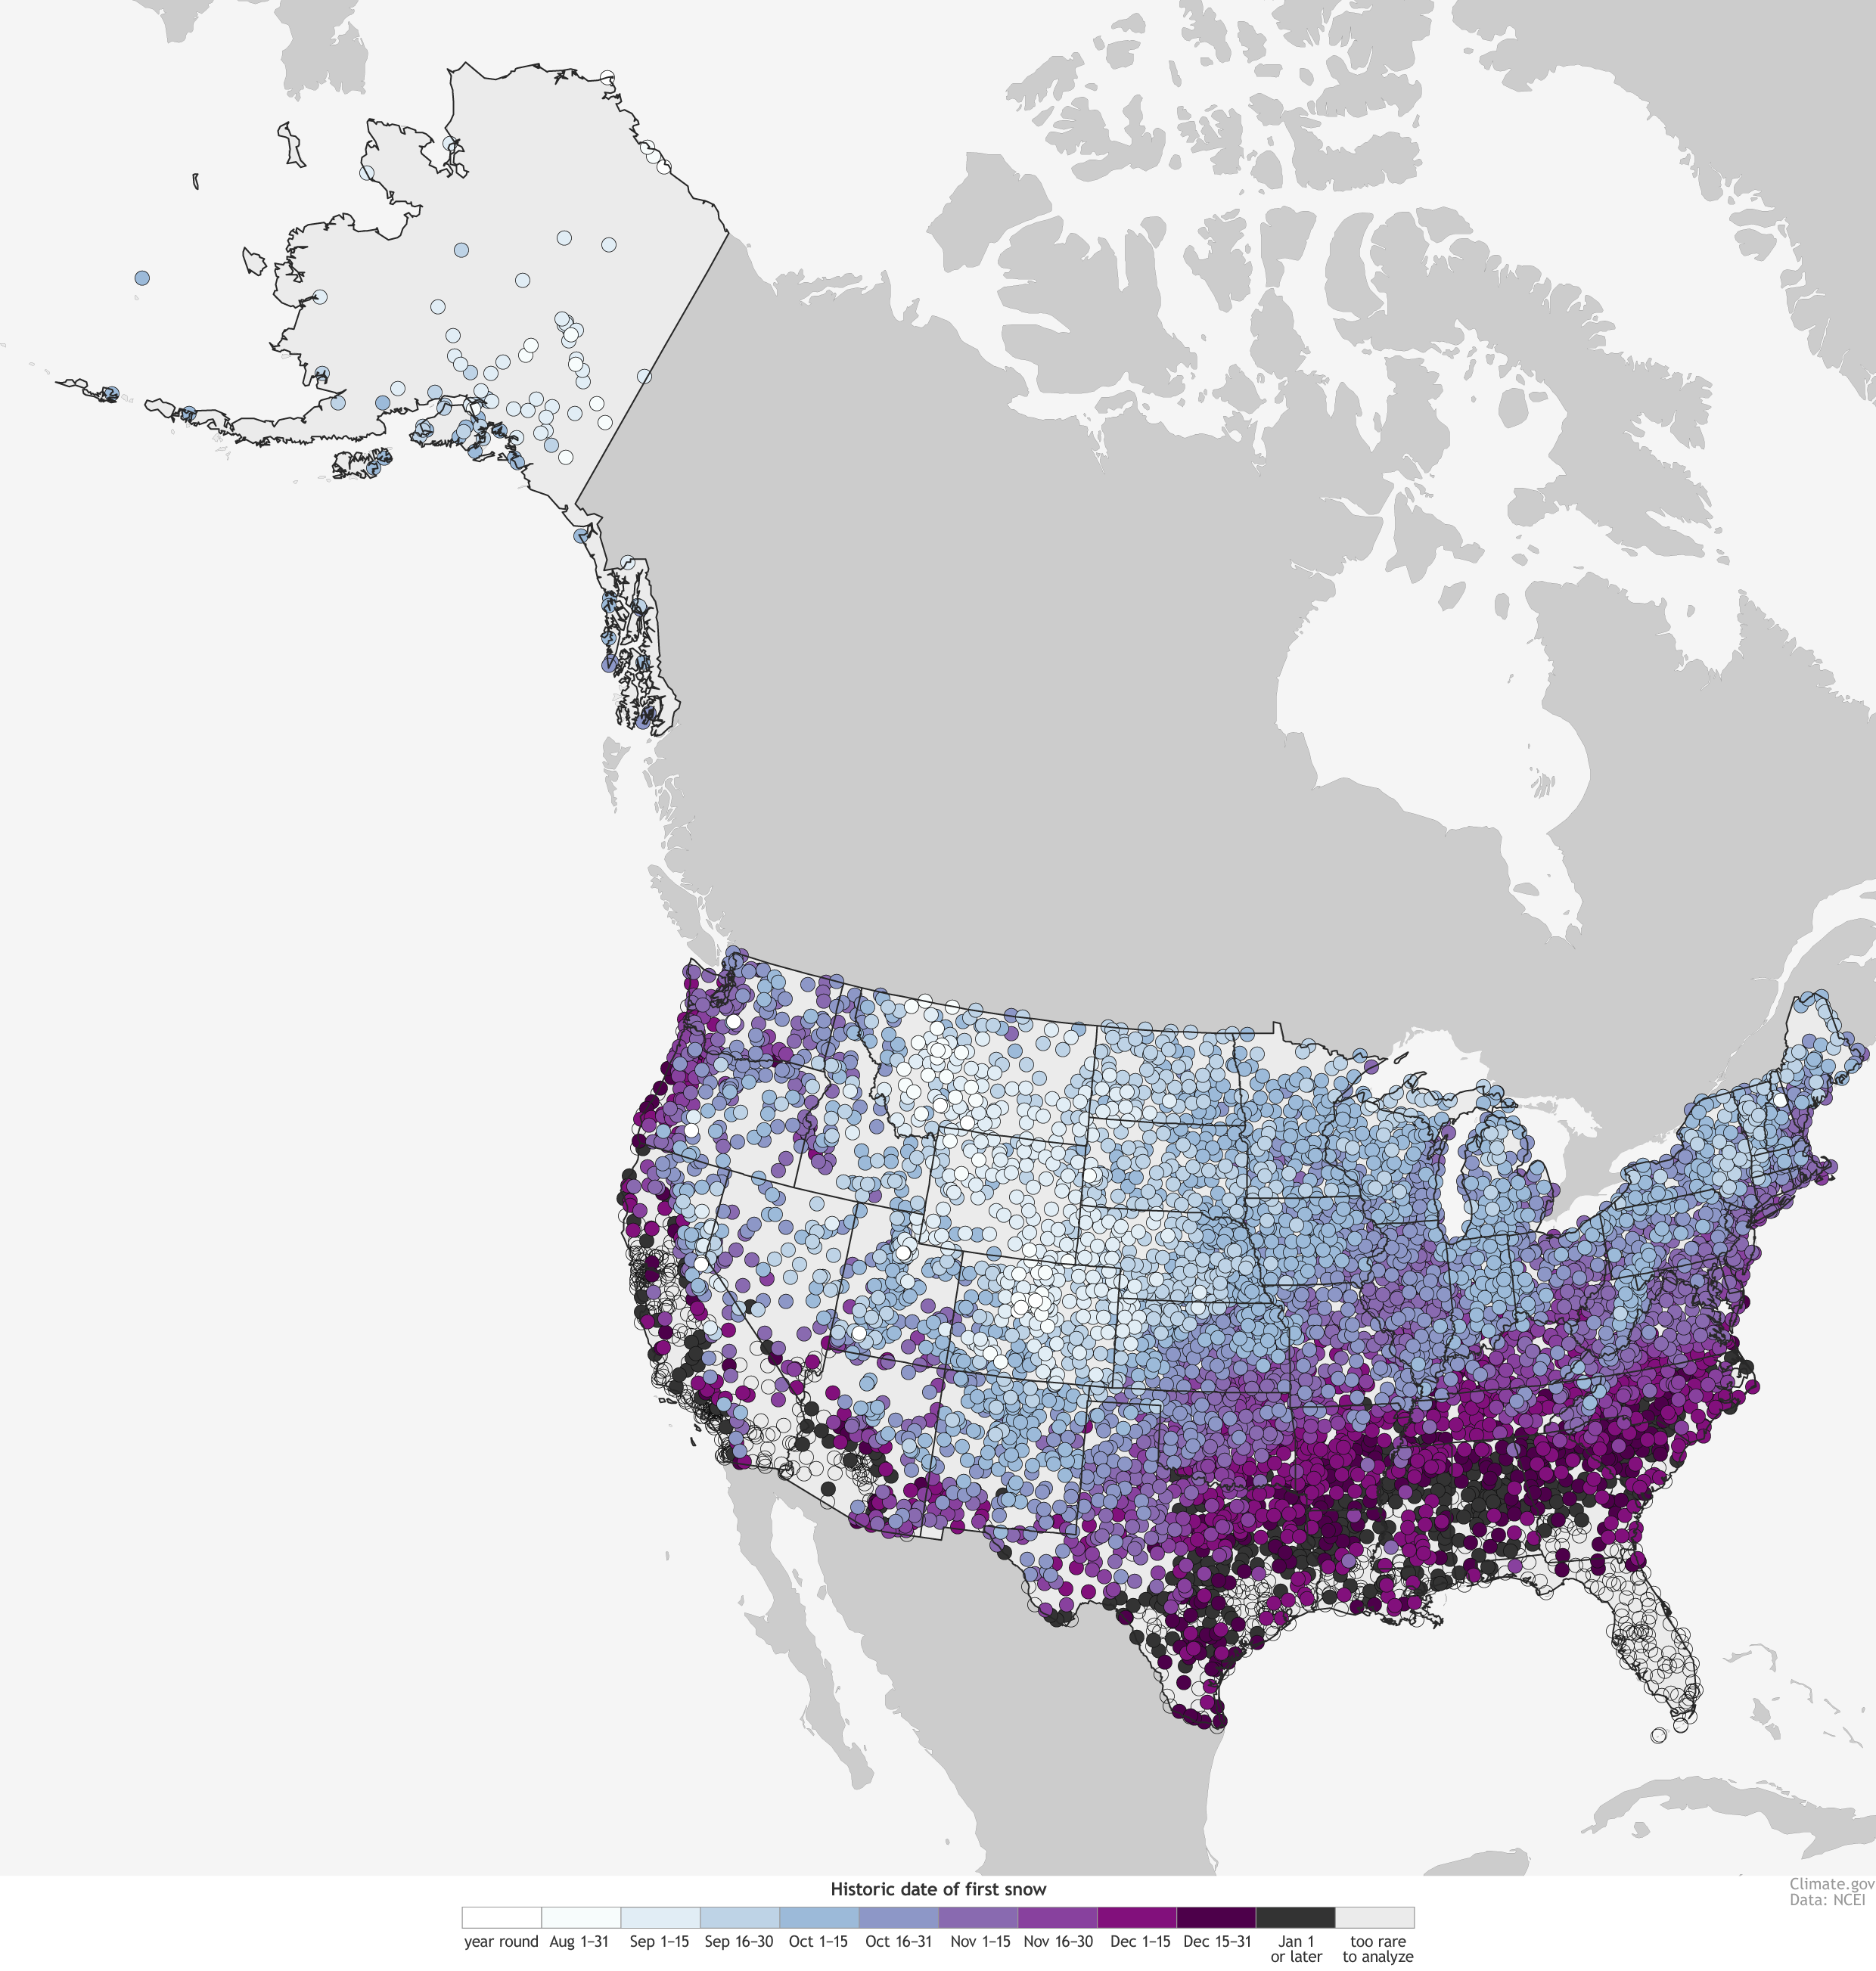 Historical map that estimates the first day of snow for an average